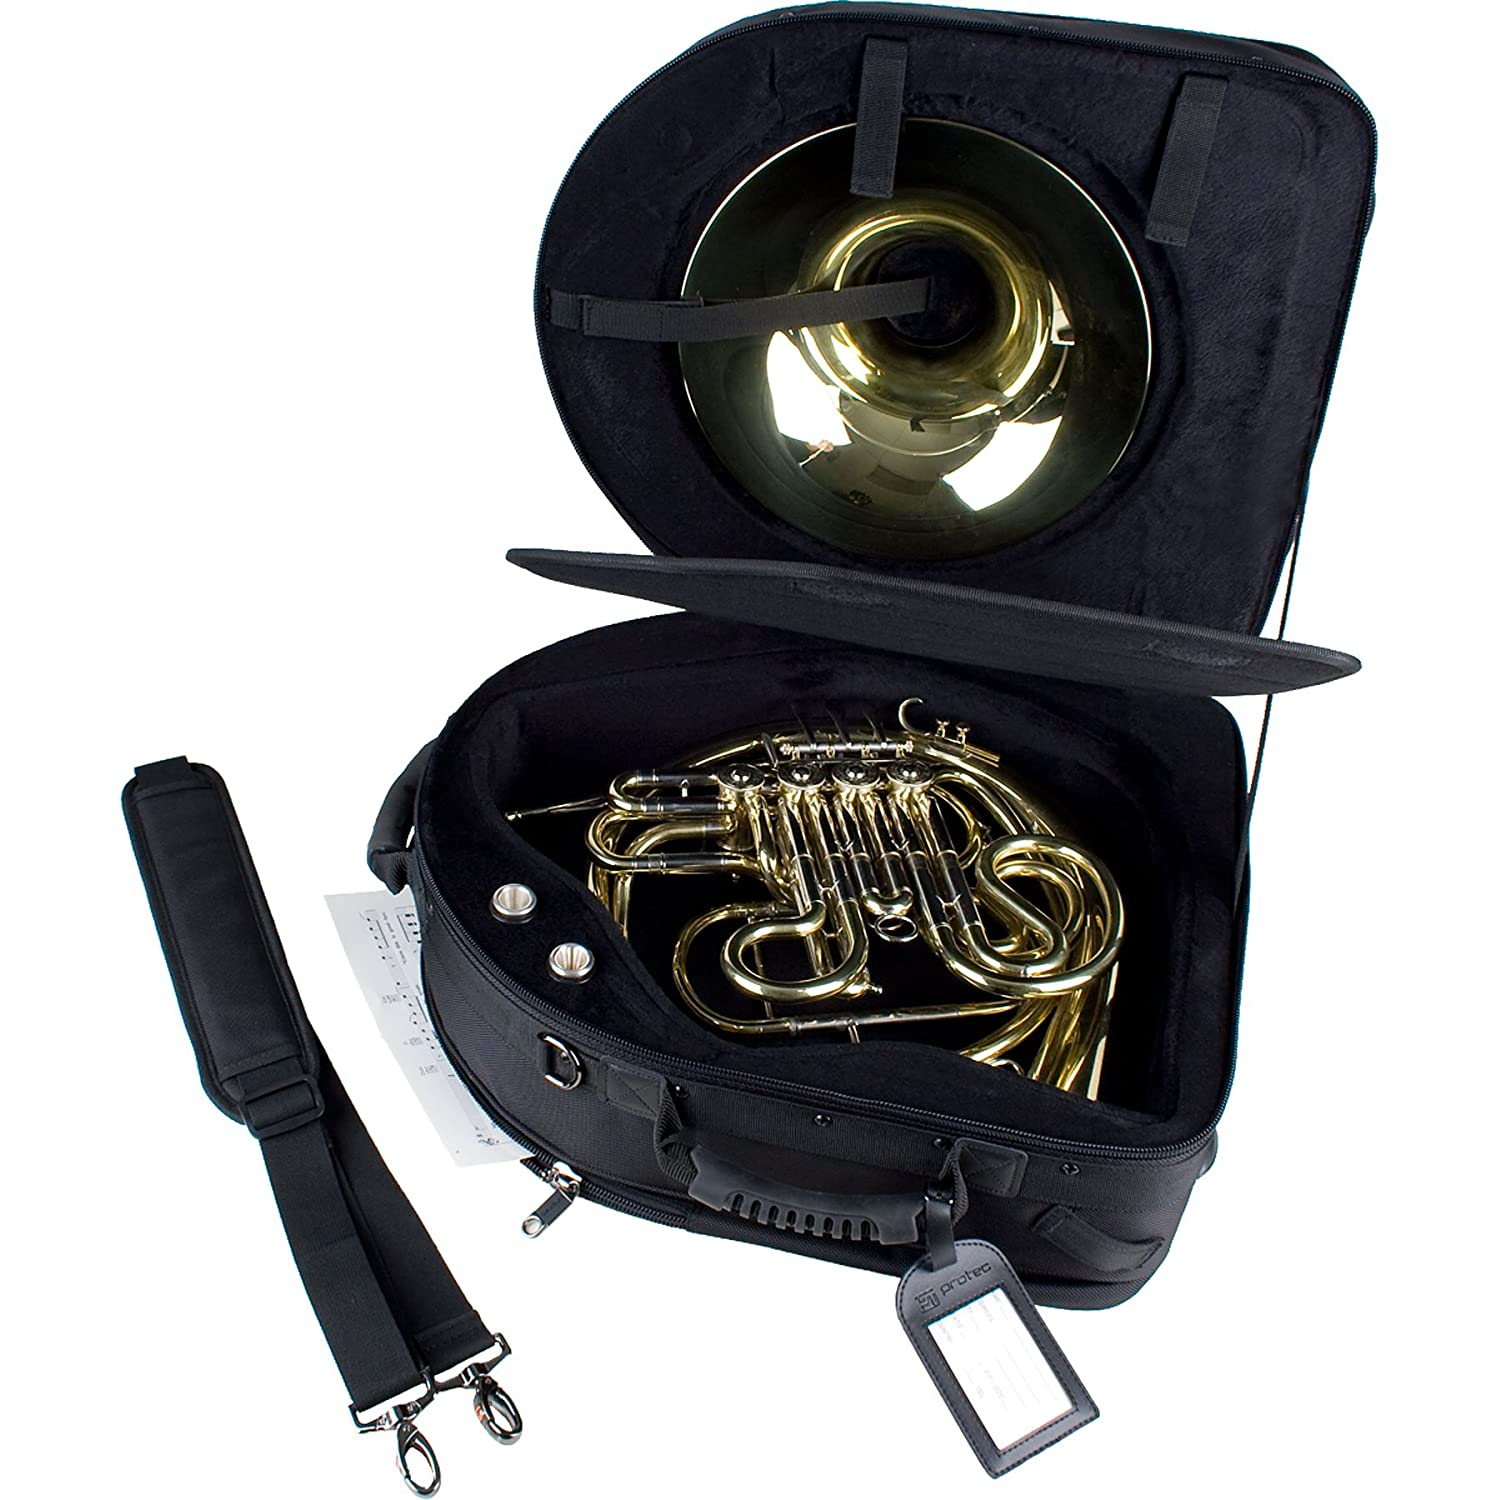 Protec French Horn Screw Bell IPAC Case - Deluxe, Model PB316SBDLX Pro Tec